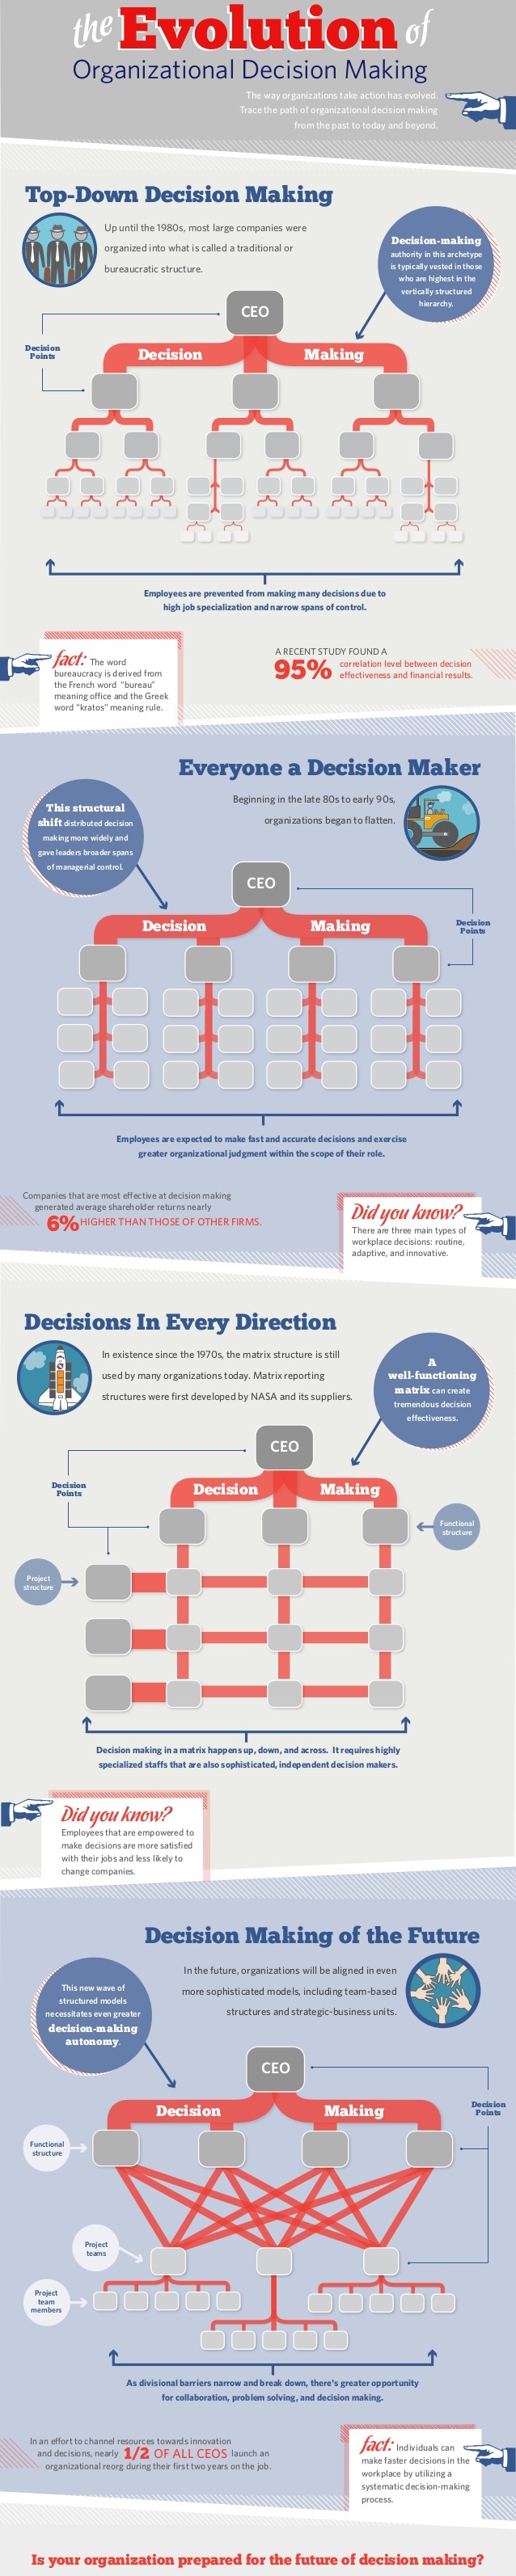 decision-making-infographic-1-638.jpg